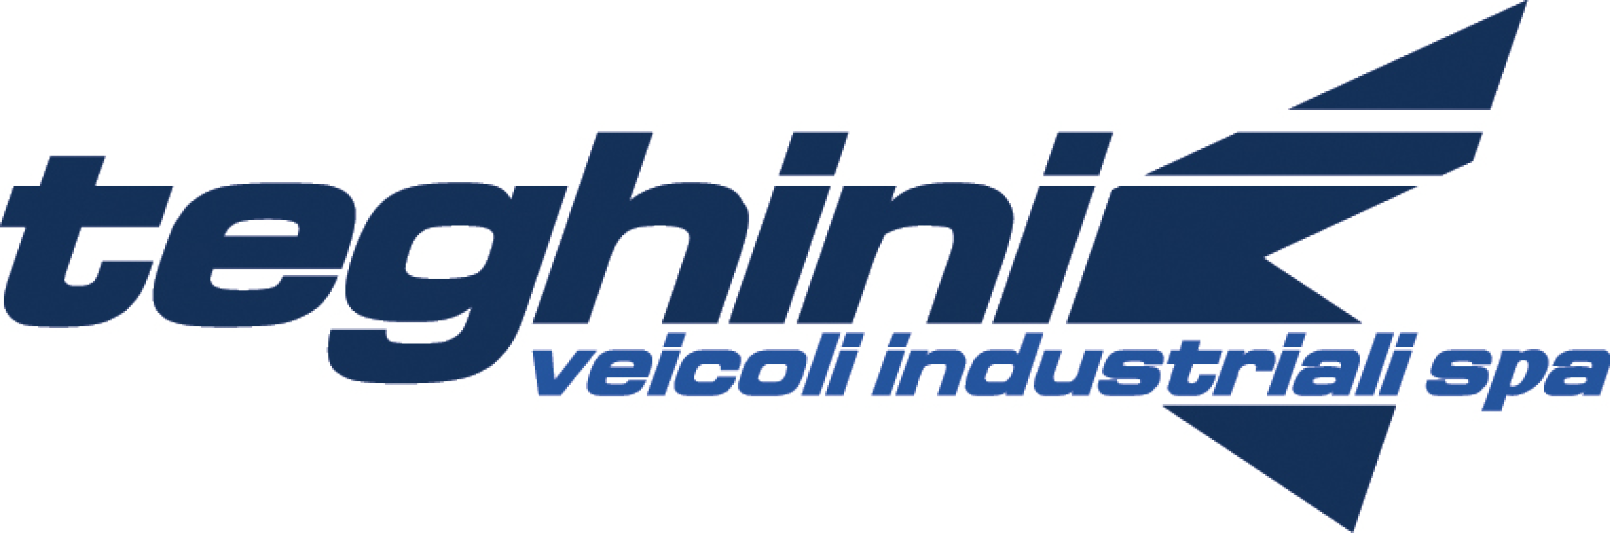 Veicoli Industriali Teghini - Volvo Trucks dealer, sales and service trucks, trailers, road tractors, new and used